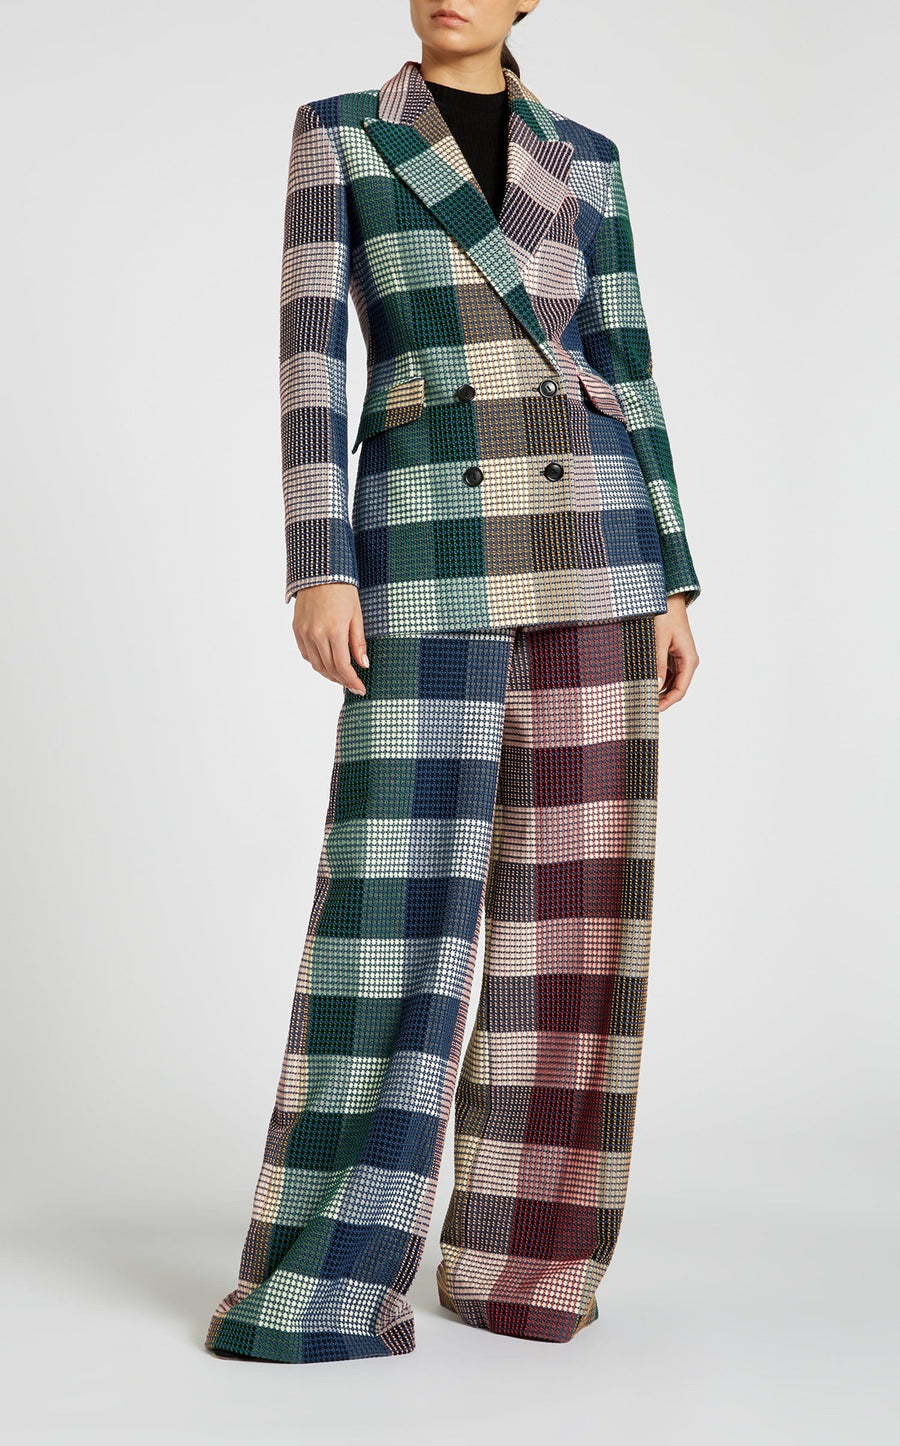 Harleston Jacket In Multi from Roland Mouret